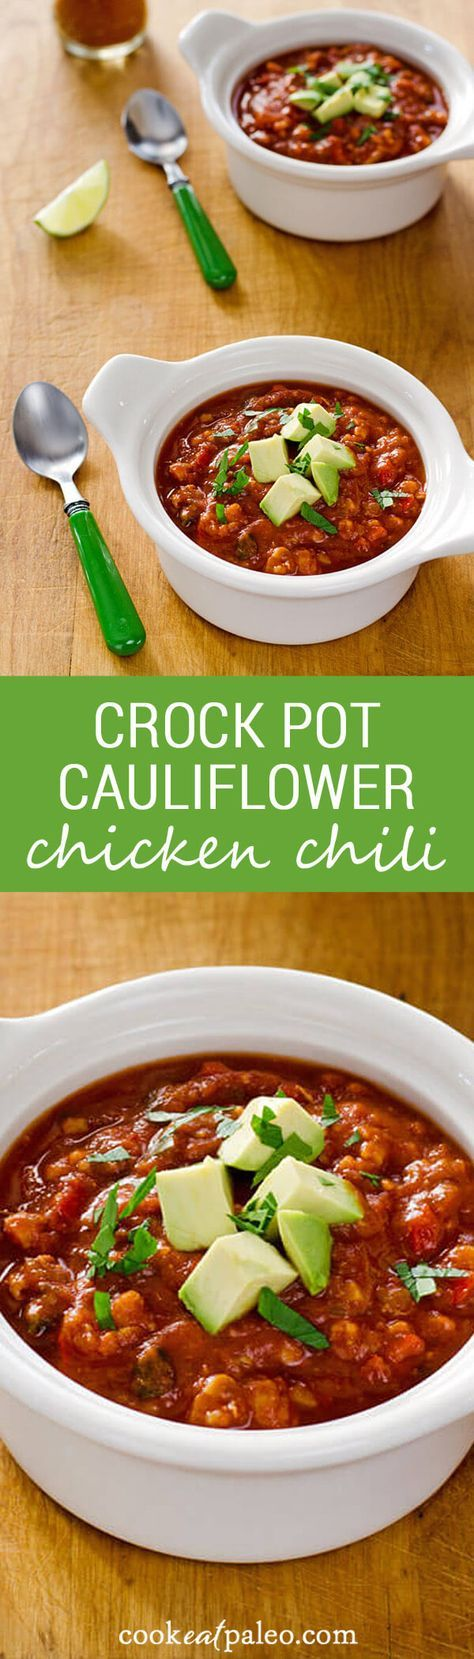 This chili recipe has a not-so-secret ingredient — cauliflower — standing in for the beans. Crock pot cauliflower chicken chili is an easy paleo dinner. ~ http://cookeatpaleo.com